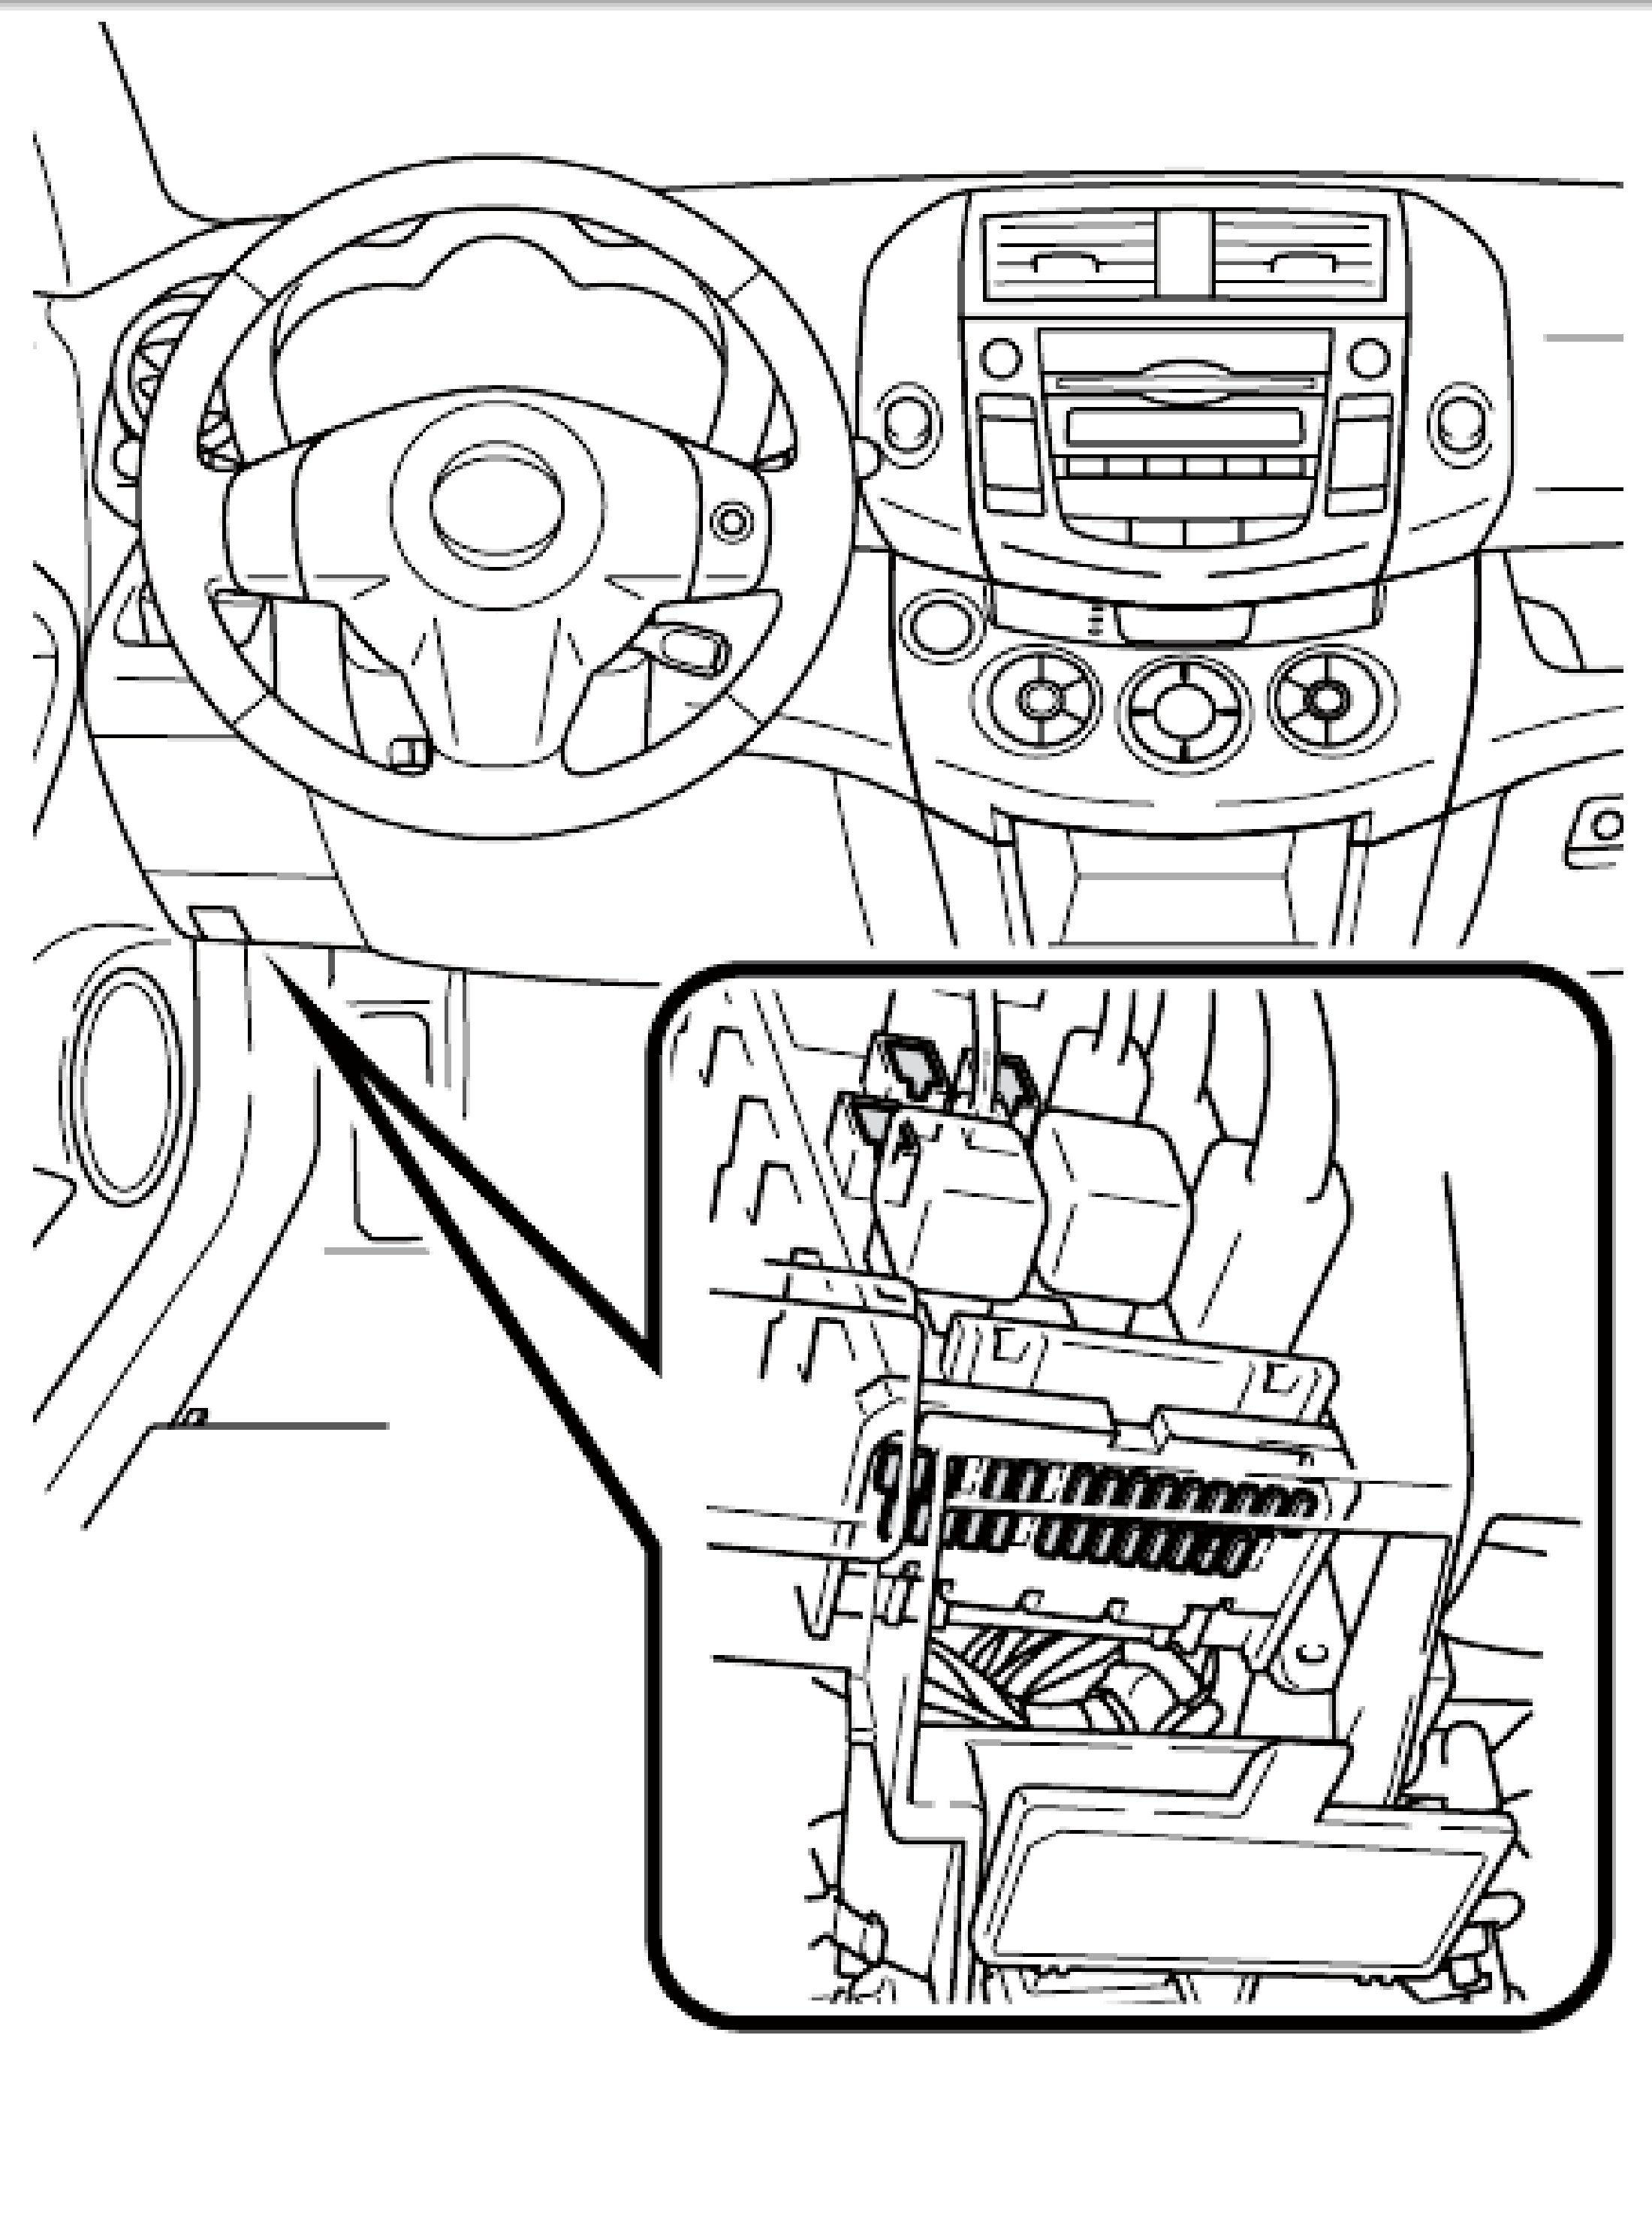 Toyota Corolla S Fuse Box Diagram